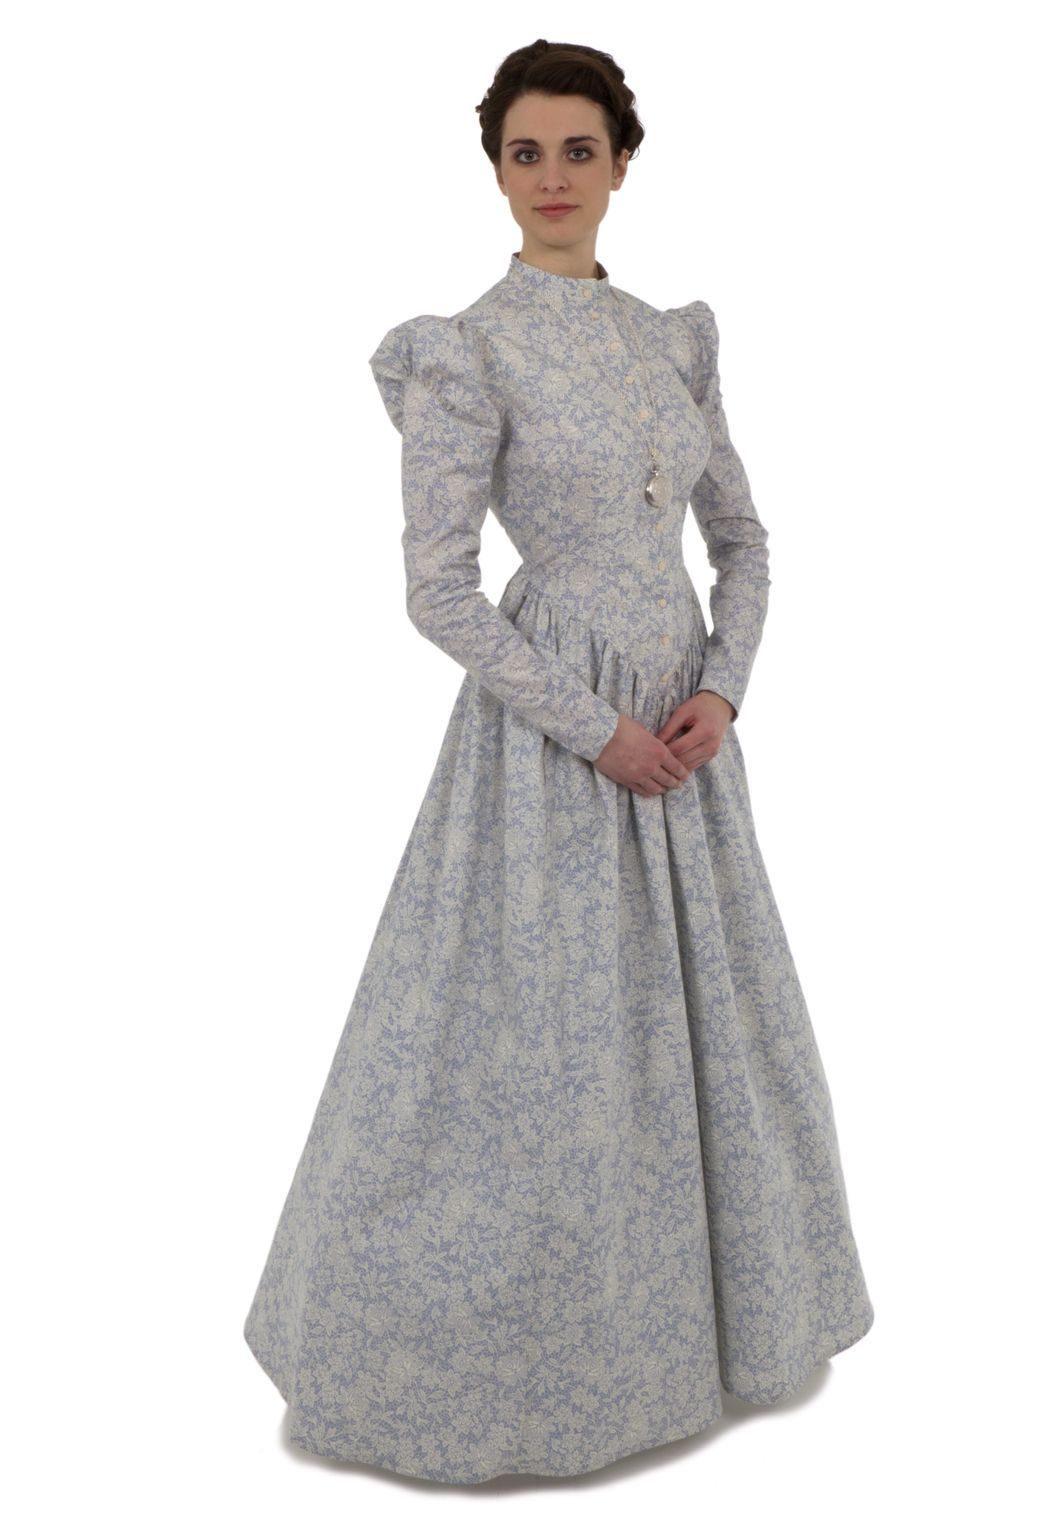 Old Fashioned English Empire Dress